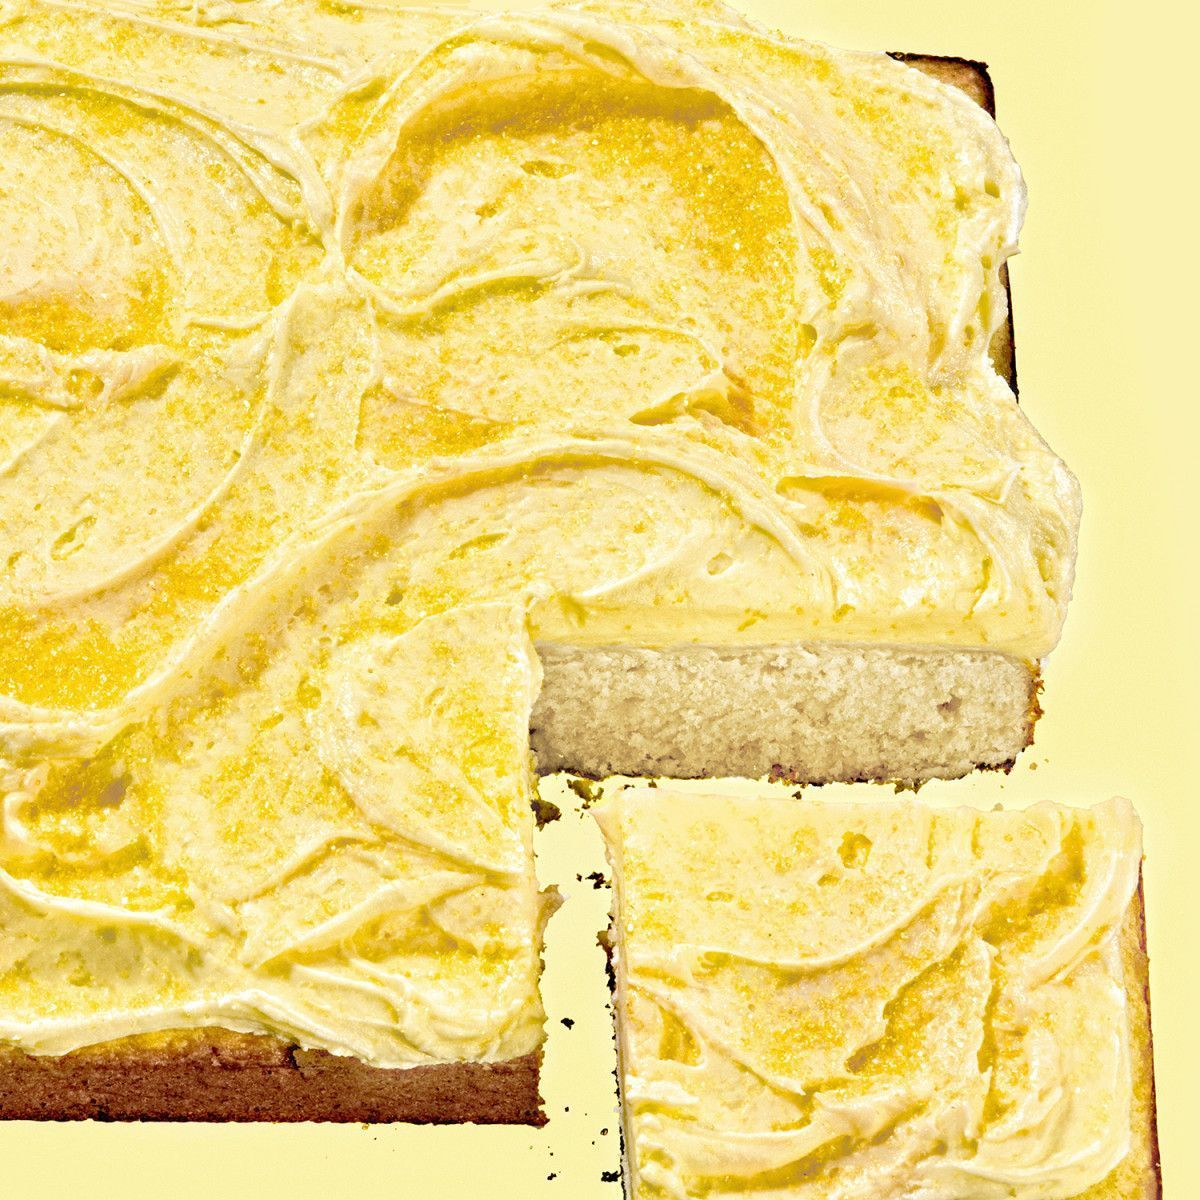 Lemon Sheet Cake with Lemon Buttercream Frosting #lemonbuttercream Lemon Sheet Cake with Lemon Buttercream Frosting. Sunny, springy weather calls for an all-yellow, all-lemon dessert. #lemonbuttercream Lemon Sheet Cake with Lemon Buttercream Frosting #lemonbuttercream Lemon Sheet Cake with Lemon Buttercream Frosting. Sunny, springy weather calls for an all-yellow, all-lemon dessert. #lemonbuttercream